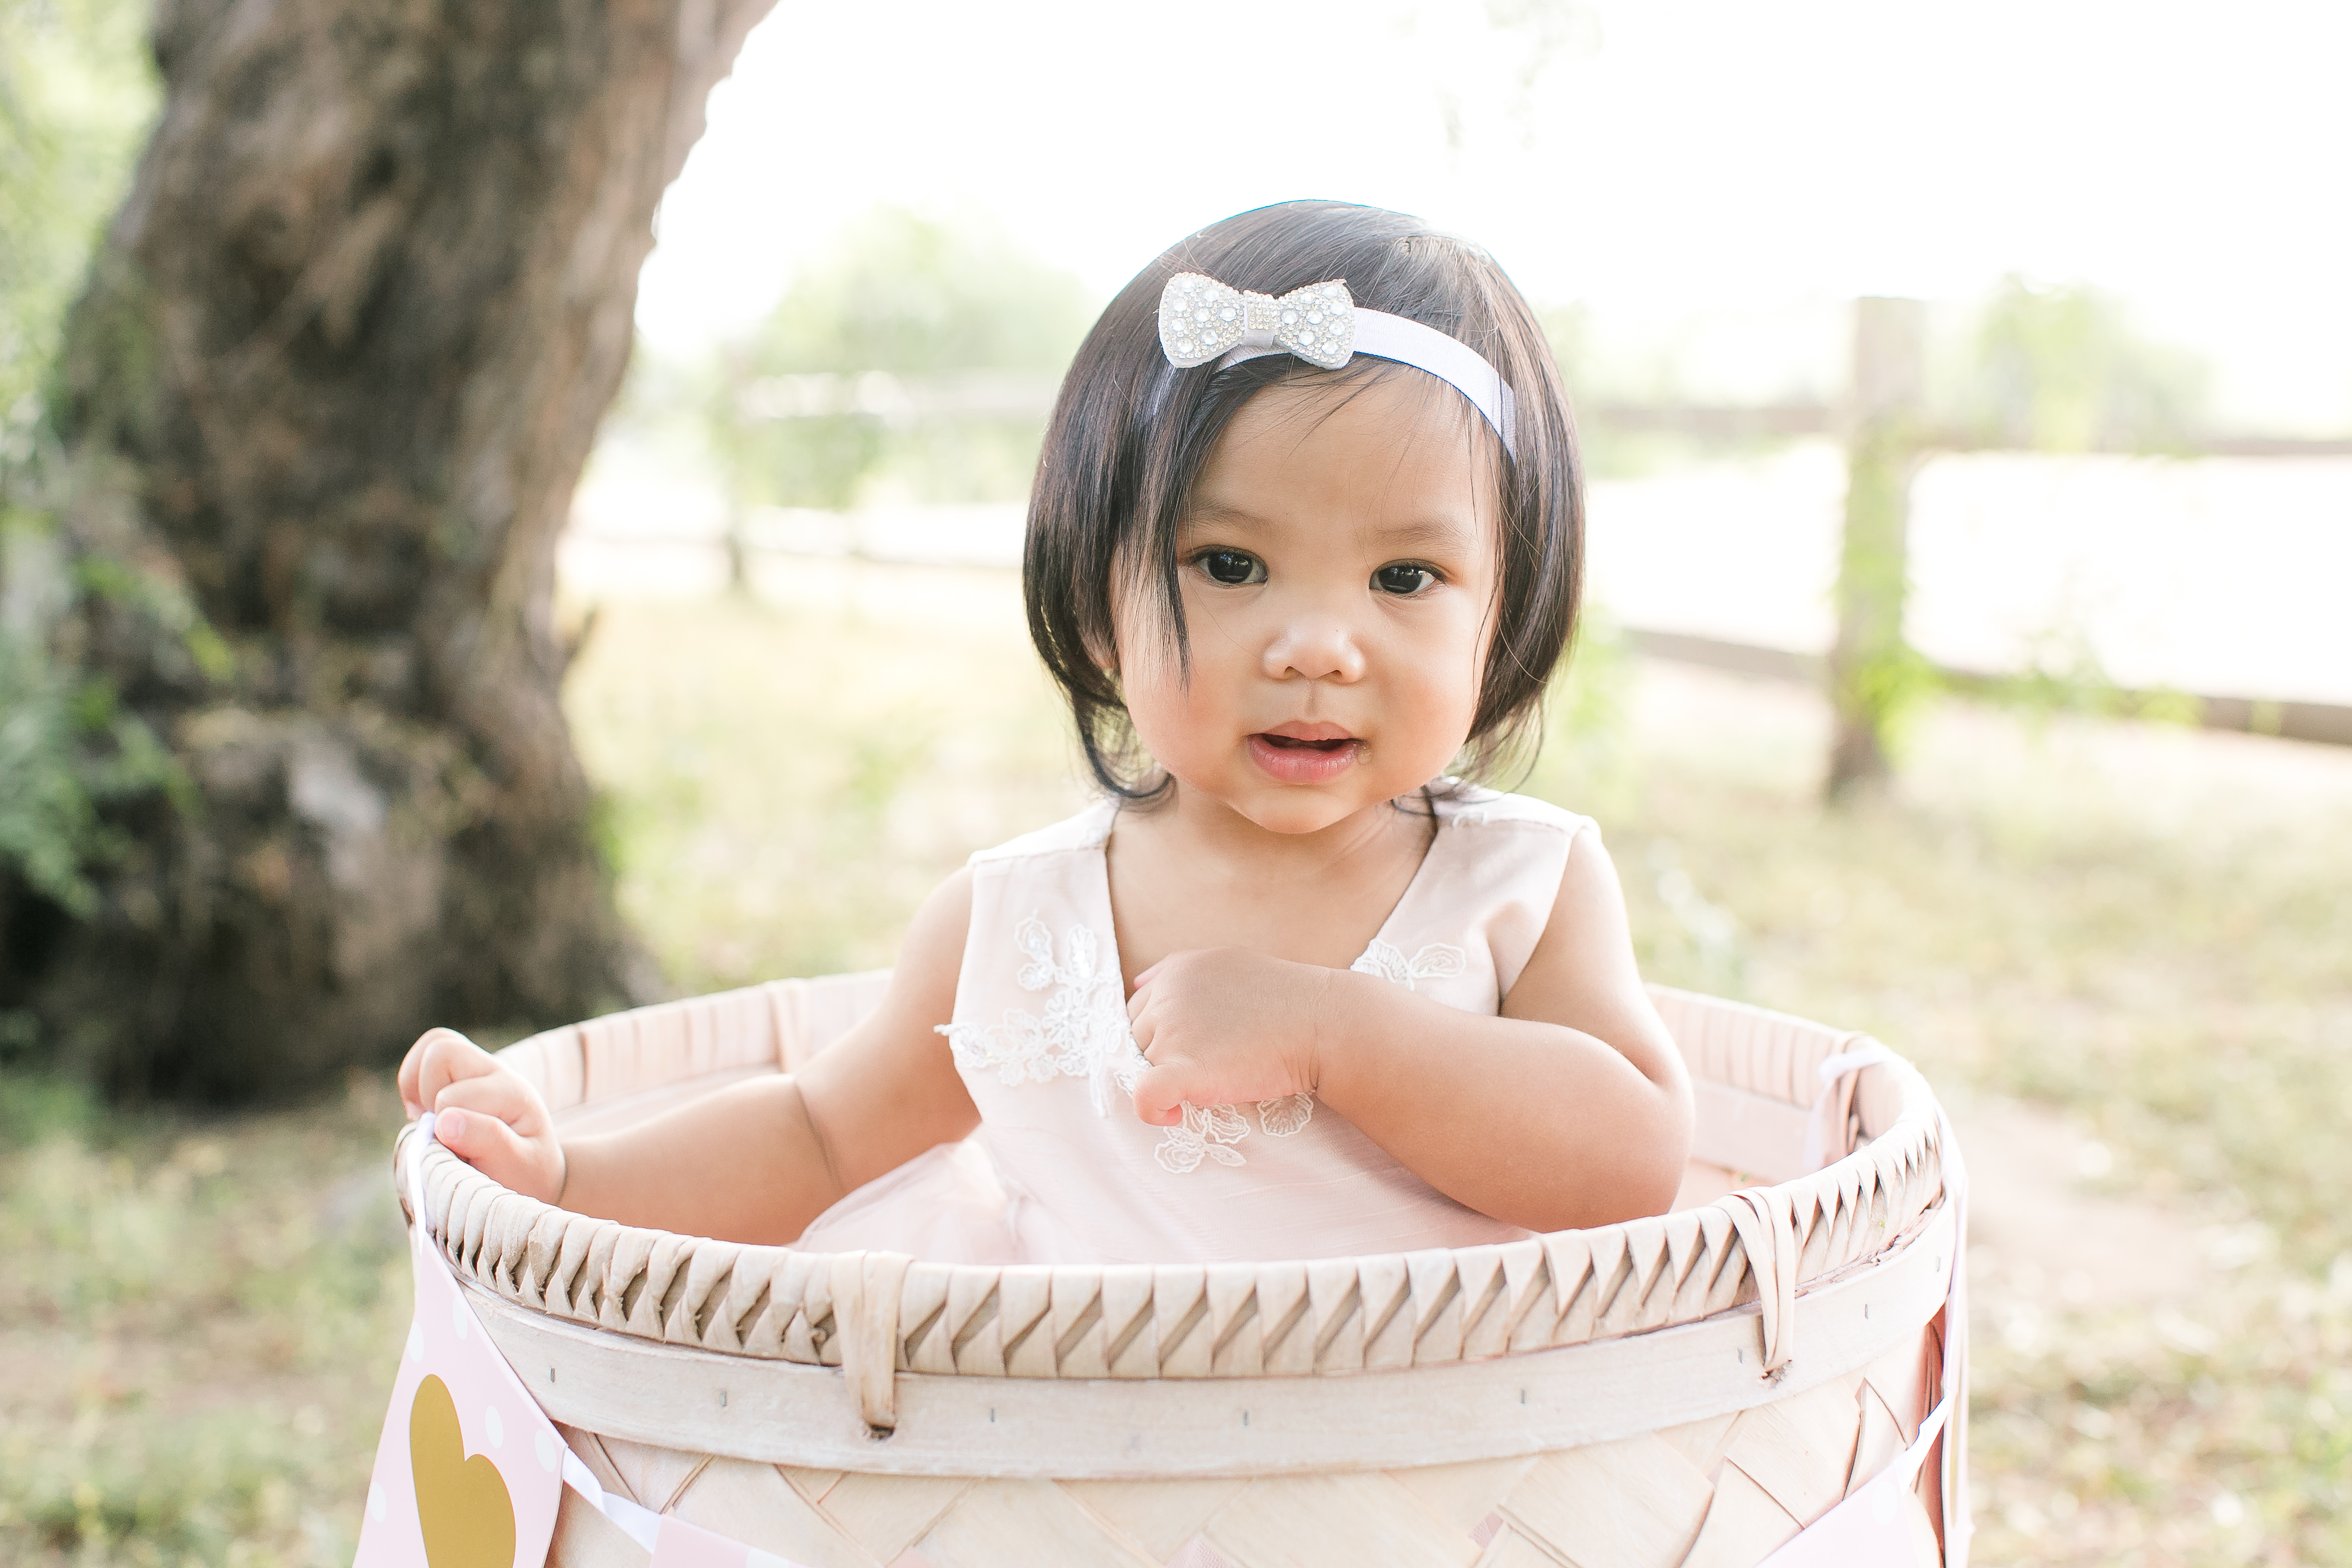 NEMA Photography J.Pham038 - Baby Justine // One year old portraits